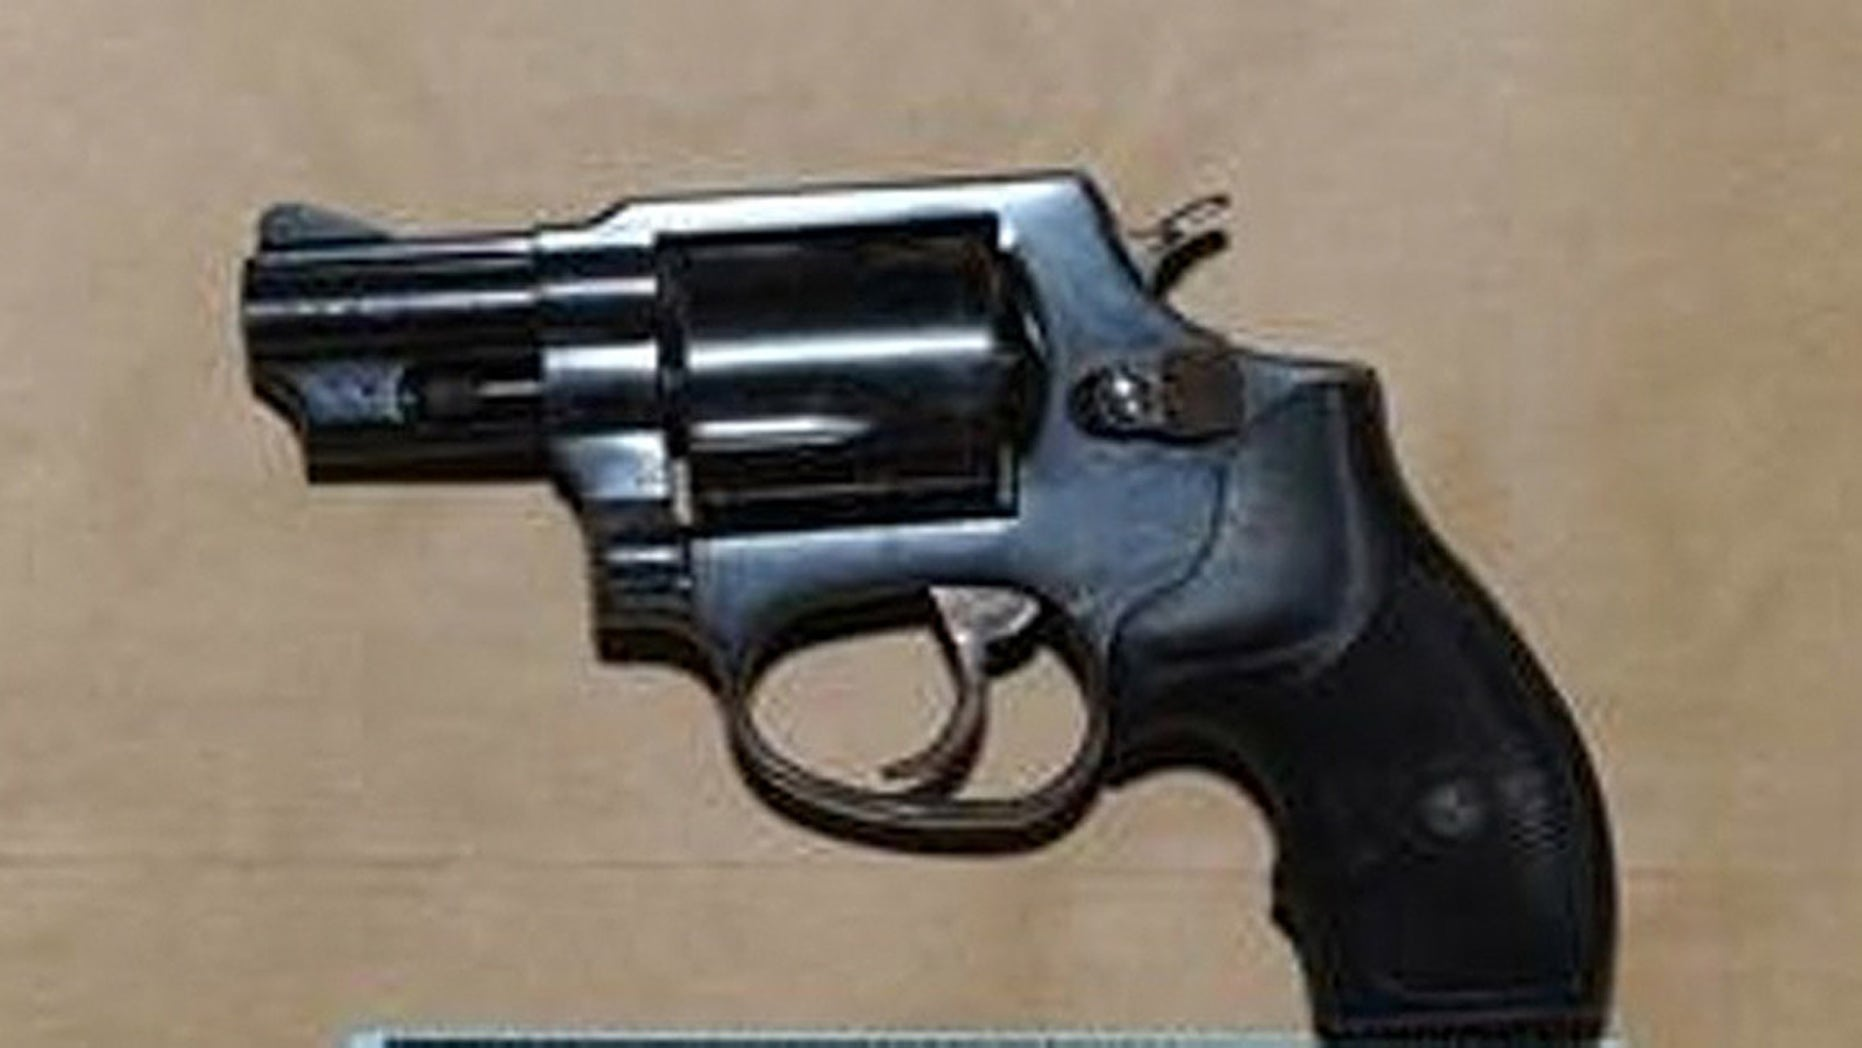 This photo, released by the New York City Police Department , Tuesday, Aug. 16, 2016. shows a .38 caliber Taurus revolver that has been recovered in connection with the shooting of Imam Maulana Alauddin Akonjee and Thara Uddin, who were shot in the head Saturday afternoon as they walked home from a mosque. (New York City Police Department via AP)